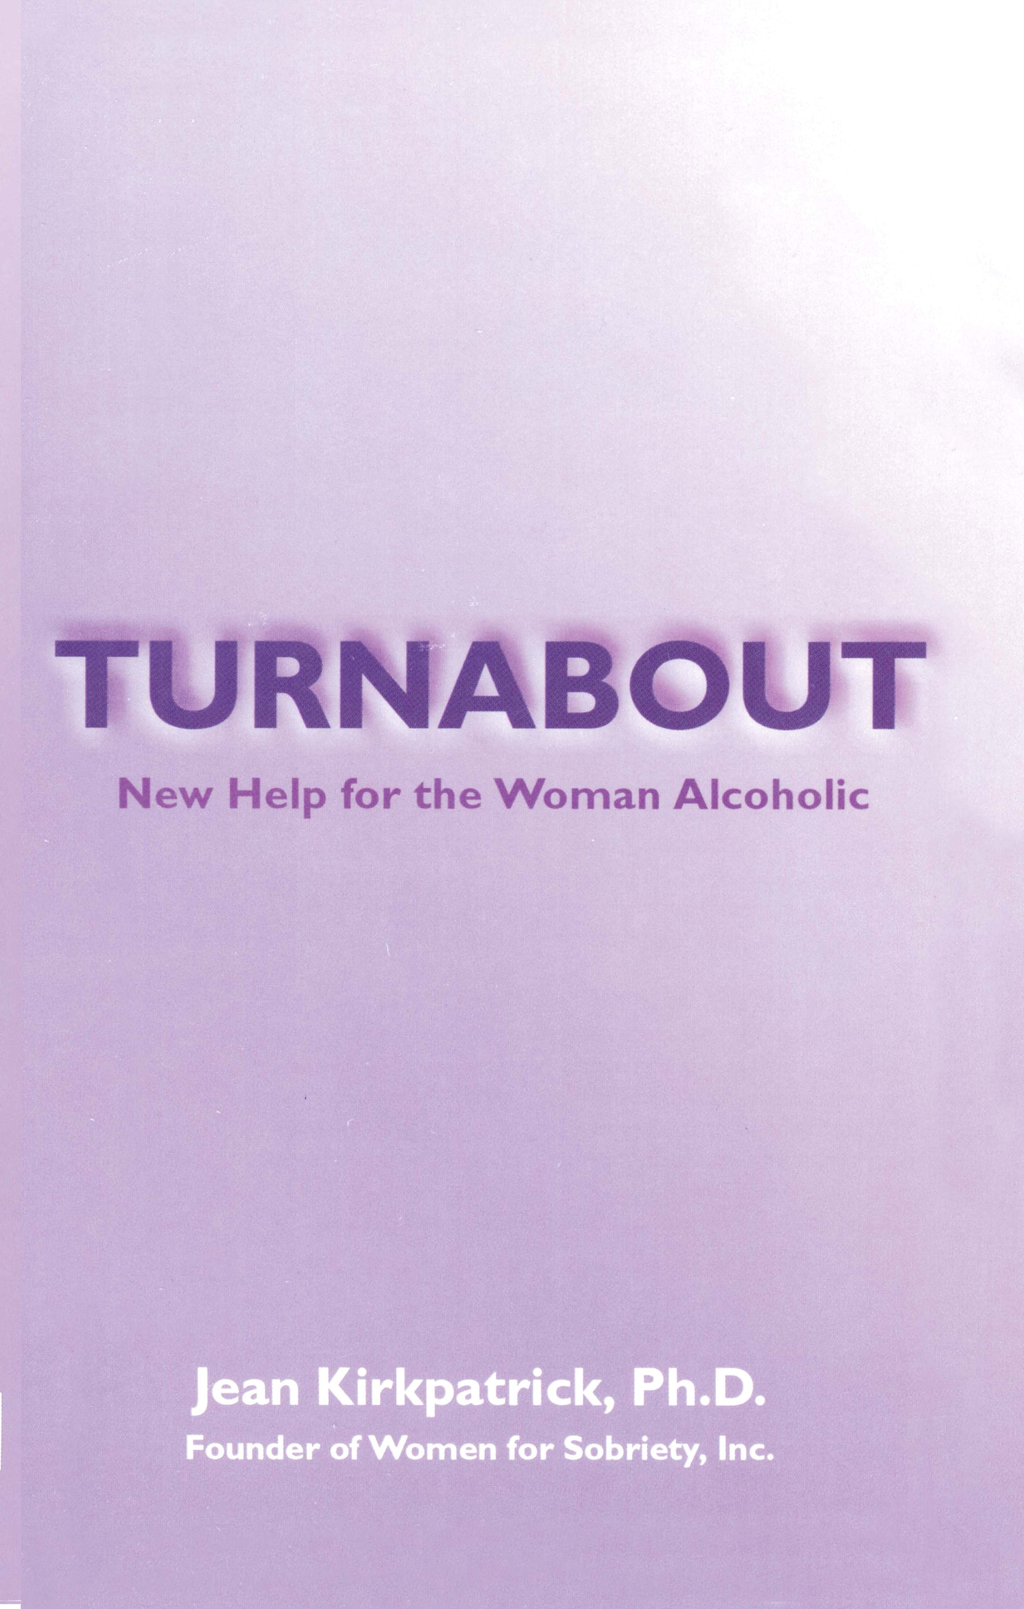 Turnabout: New Help for Woman Alcoholic